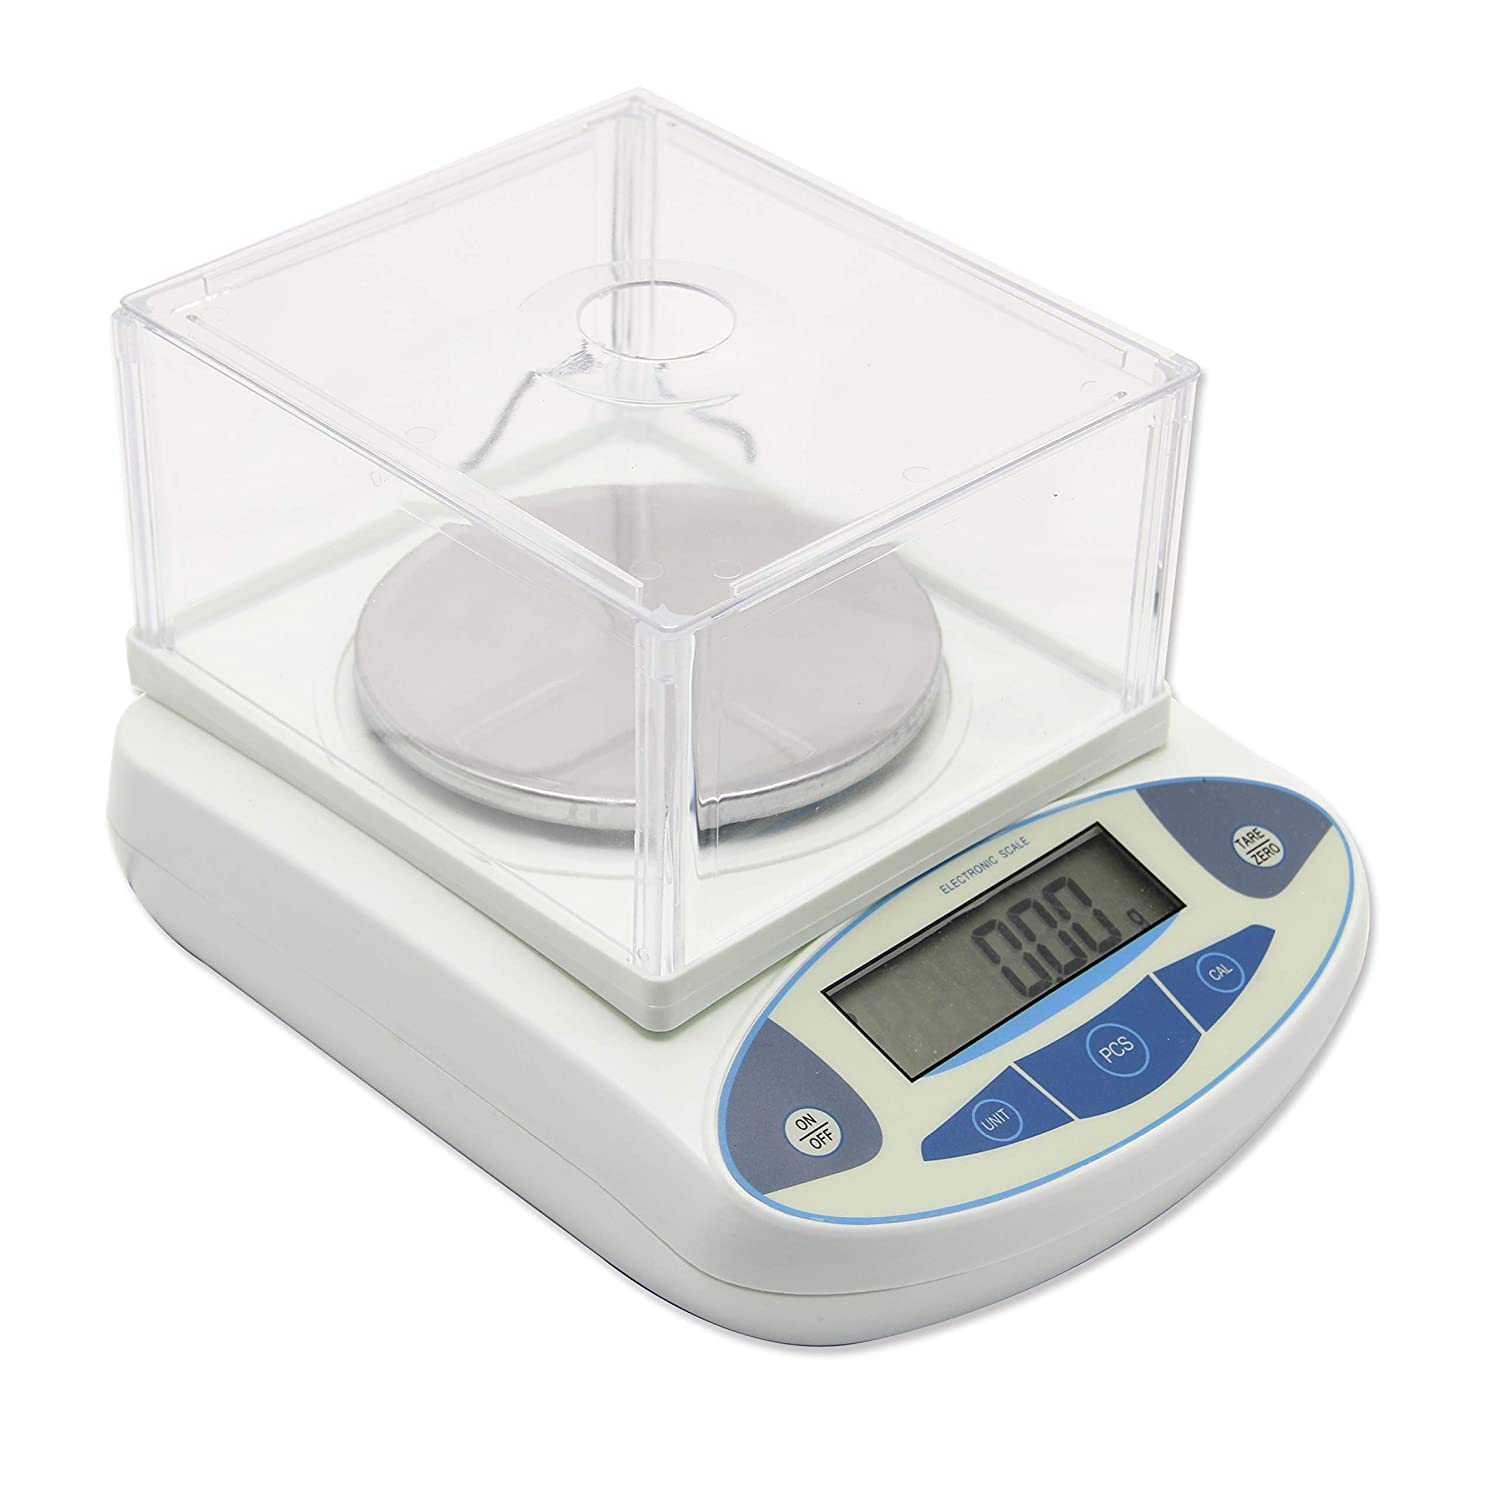 0.01g 3000g High Precision Lab Scale Digital Analytical Electronic Balance Laboratory Lab Precision Scale Jewelry Scales Kitchen Precision Weighing Electronic Scales 0.01g Calibrated & Ready to use (5000g, 0.01g)